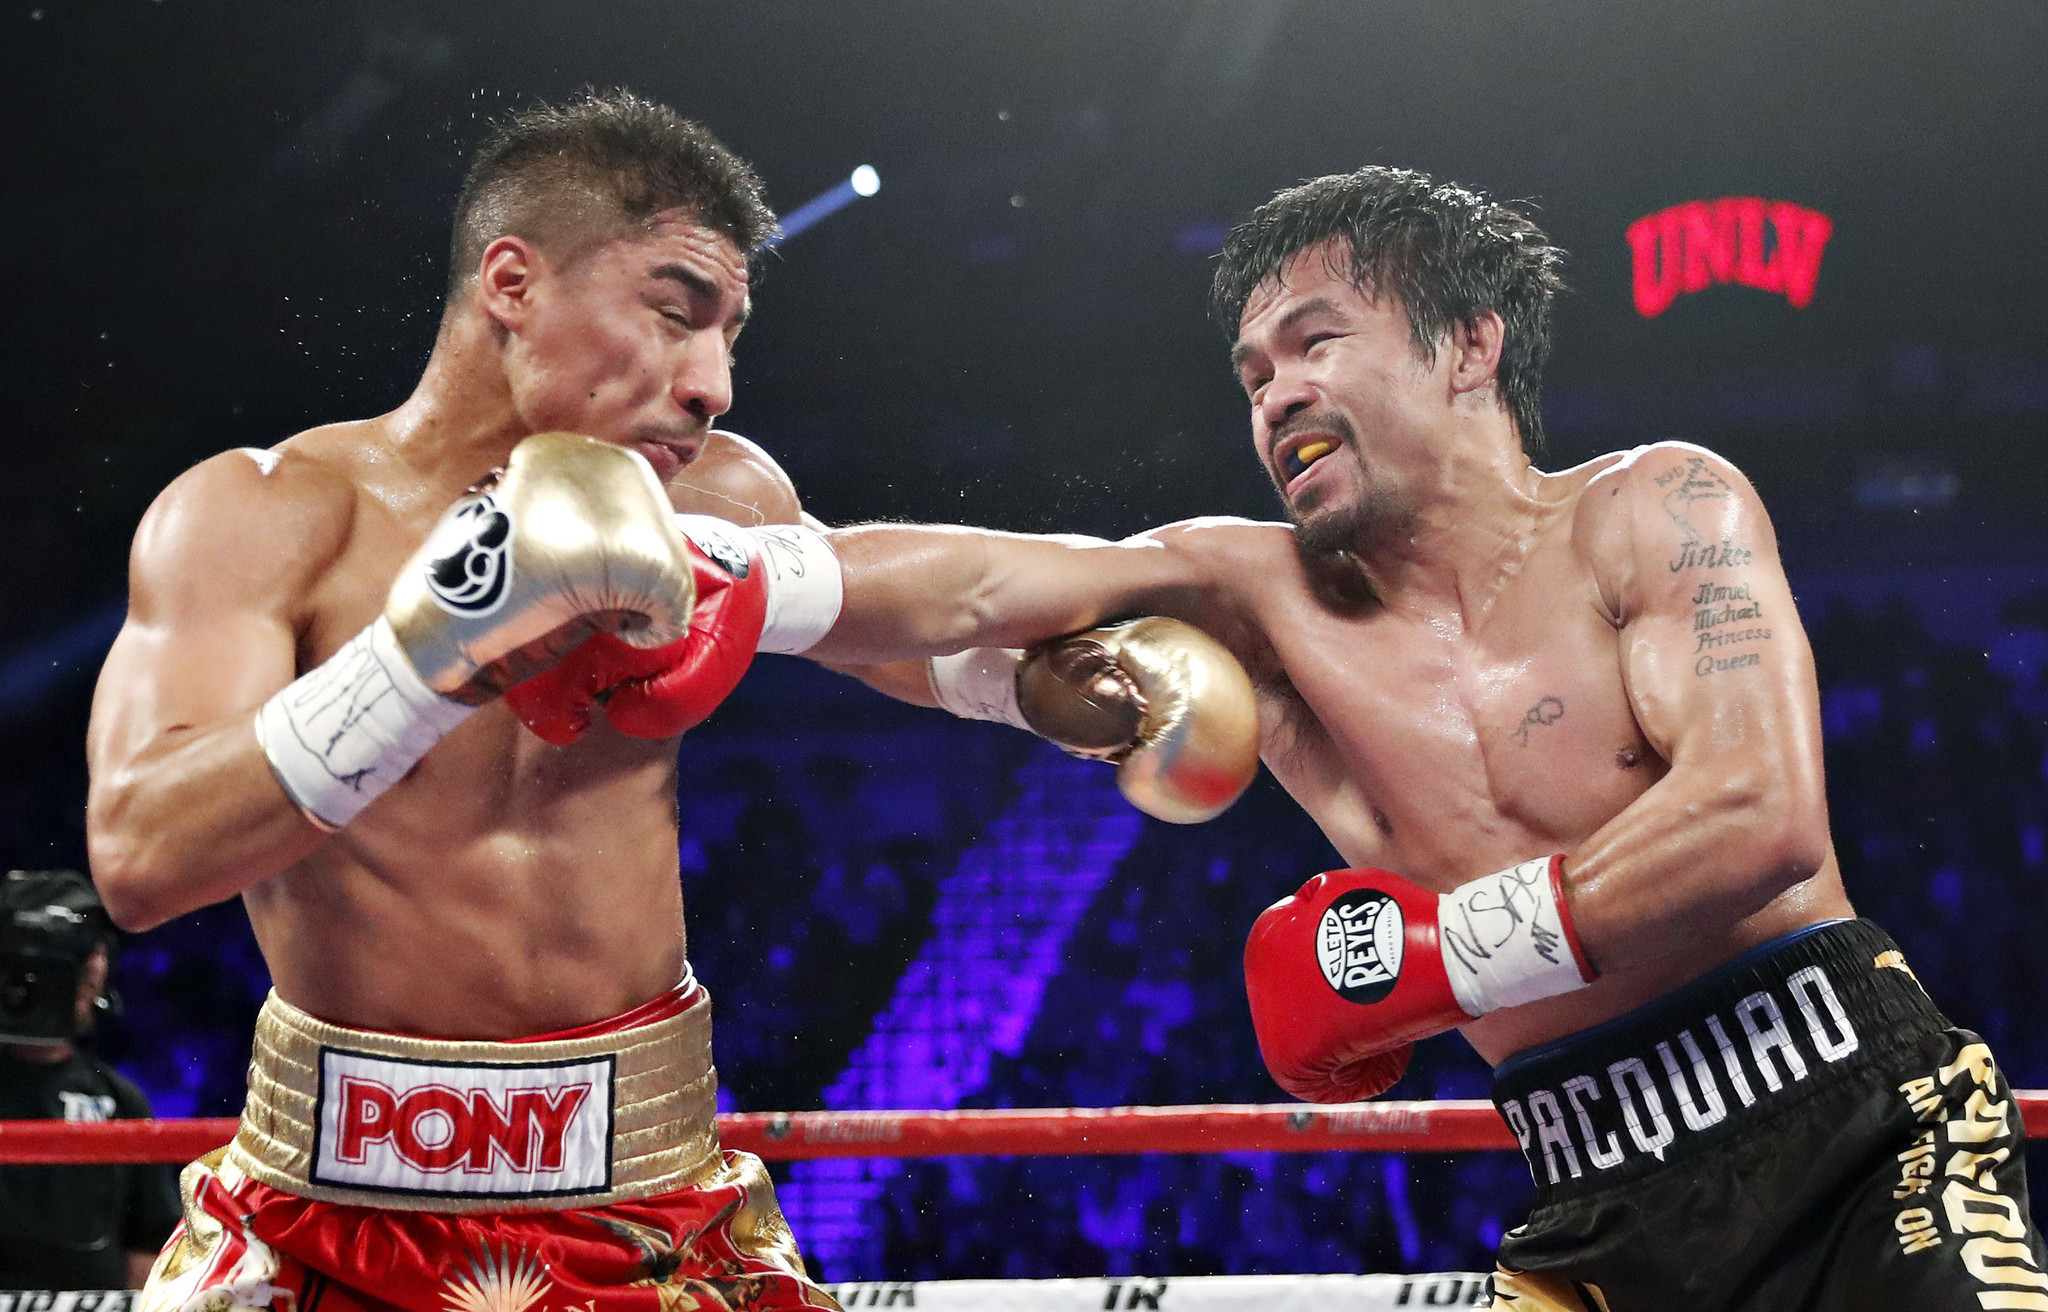 pacquiao on potential bout with mayweather if the fans want that